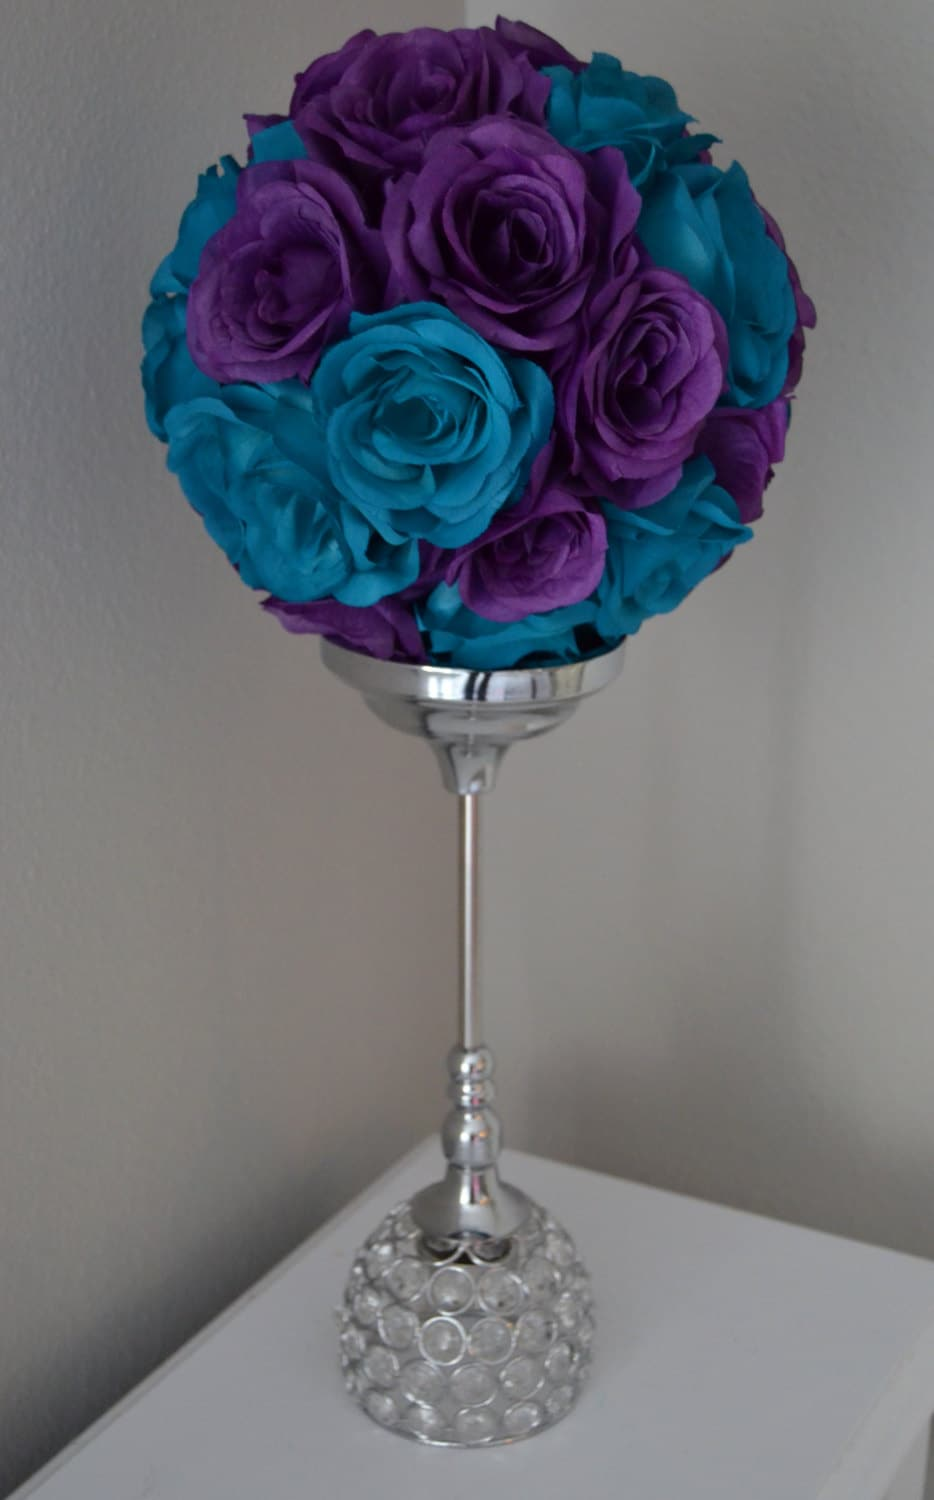 Teal and purple flower ball mix wedding centerpiece